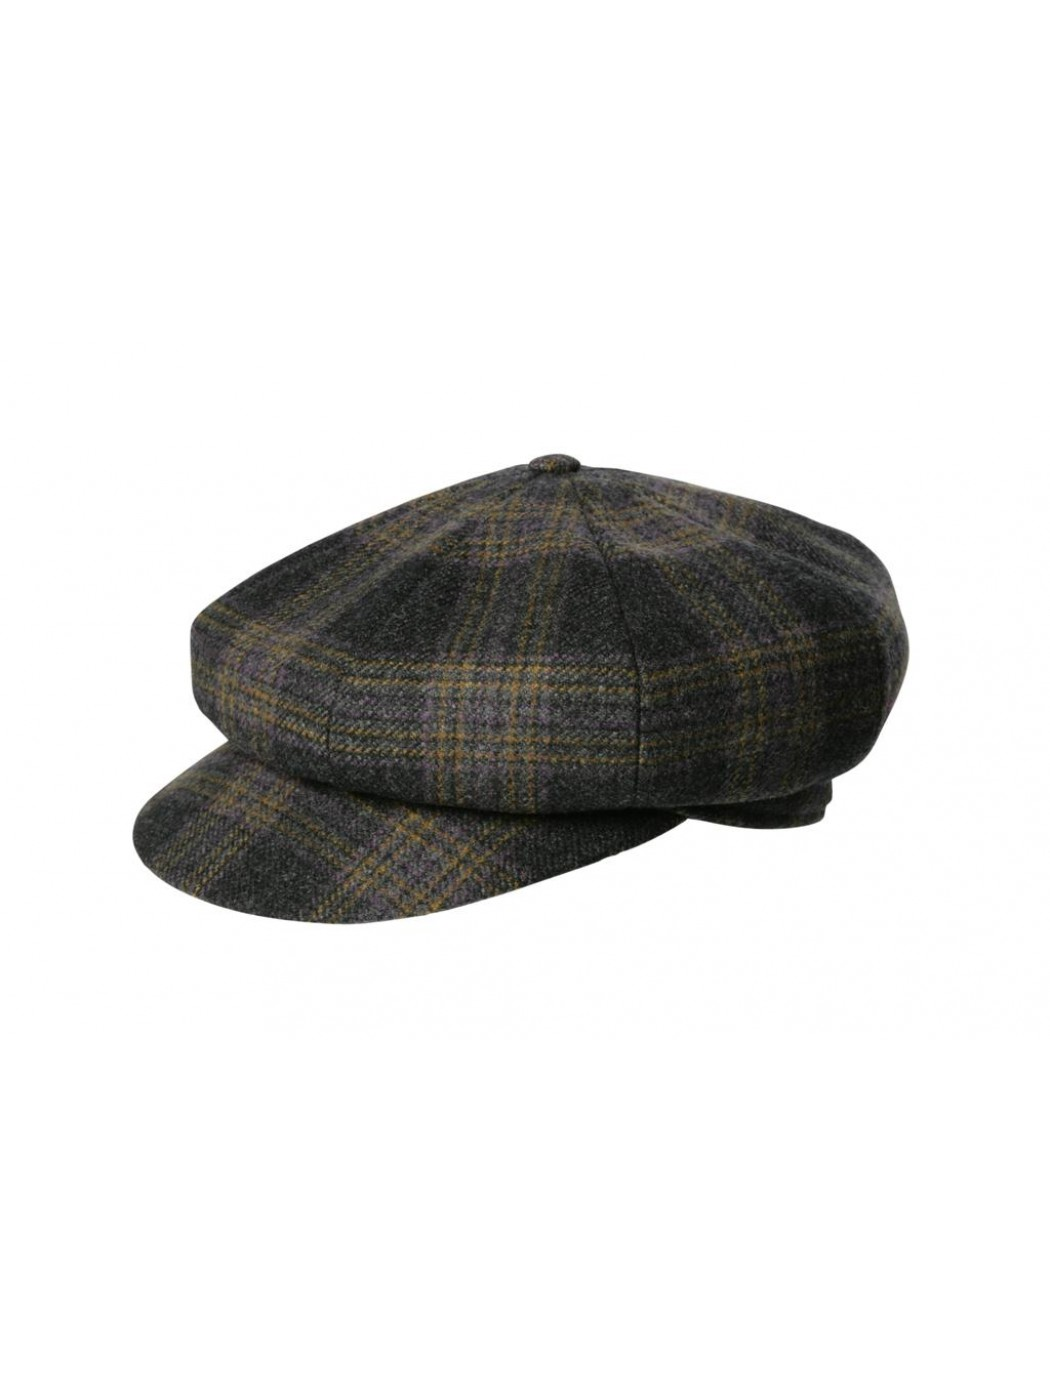 moore-tweed-cap-connemara-smoke-dubarry-1